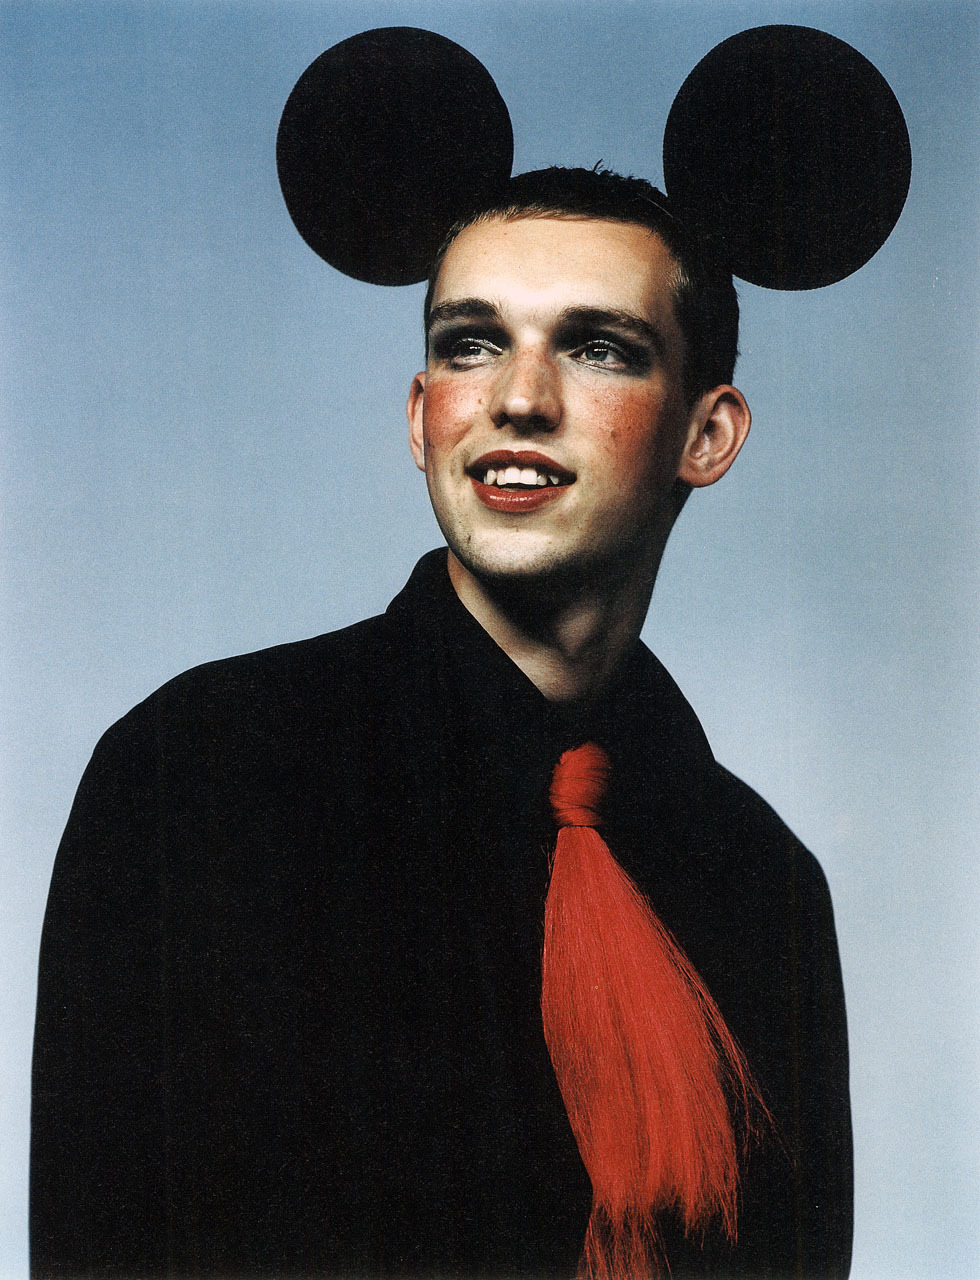 The Facephotography nathaniel goldberg  Fashion Images de Mode Nº5 (2000)